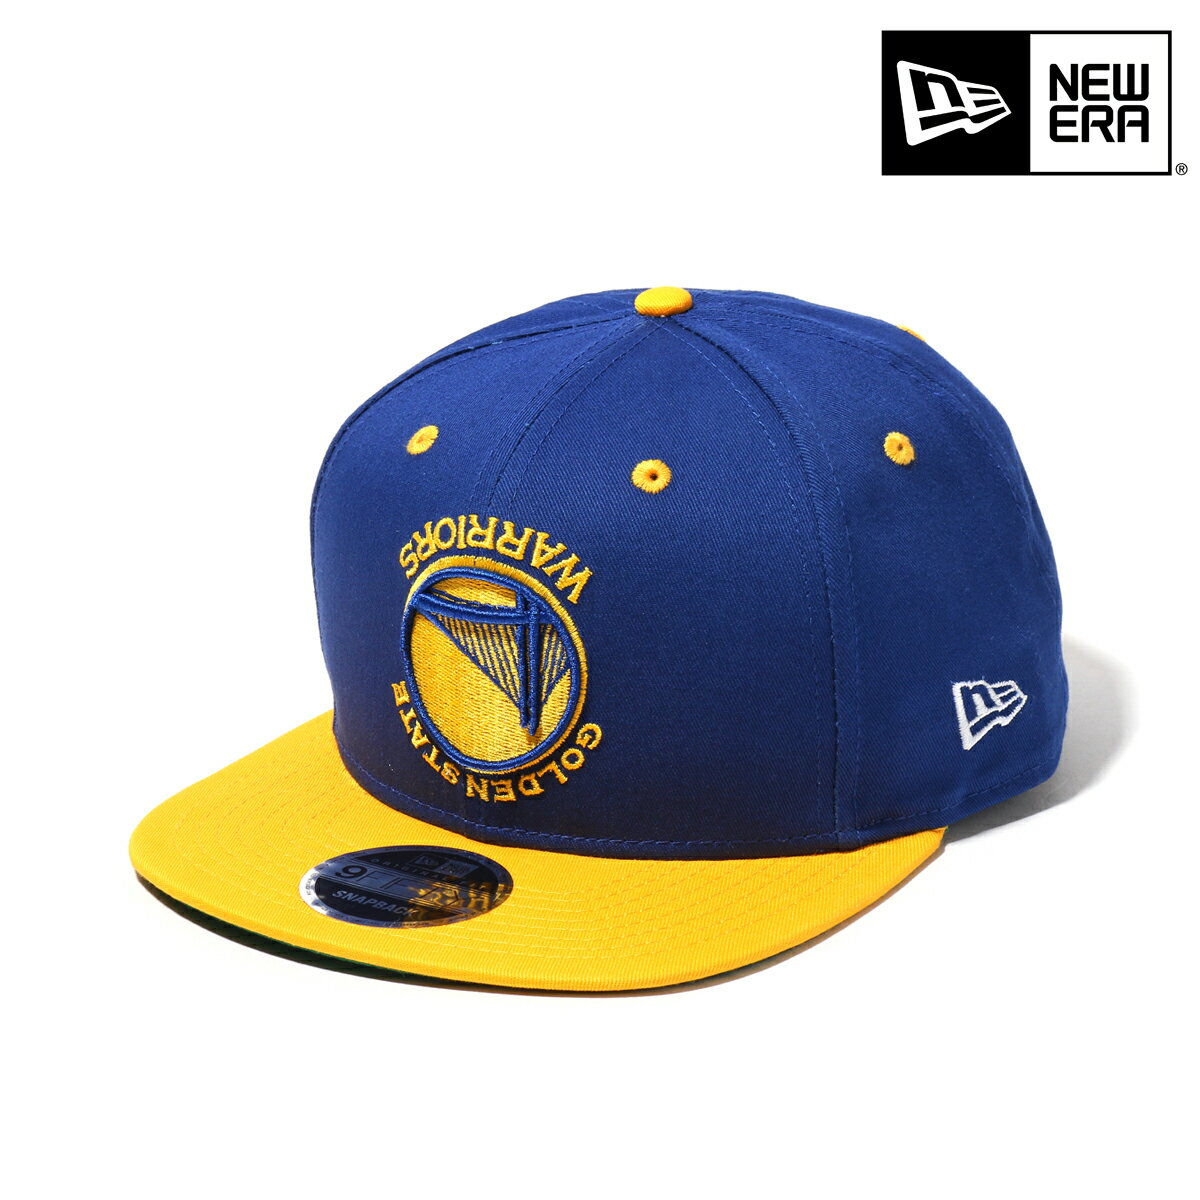 NEWERA 9FIFTY Original Fit UPSIDEDOWN-GOLDEN STATE WARRIORS(ROYAL/GOLD)(ニューエラ ナインフィフティー オリジナルフィット ゴールデンステート ウォリアーズ)【帽子】【18SP-I】